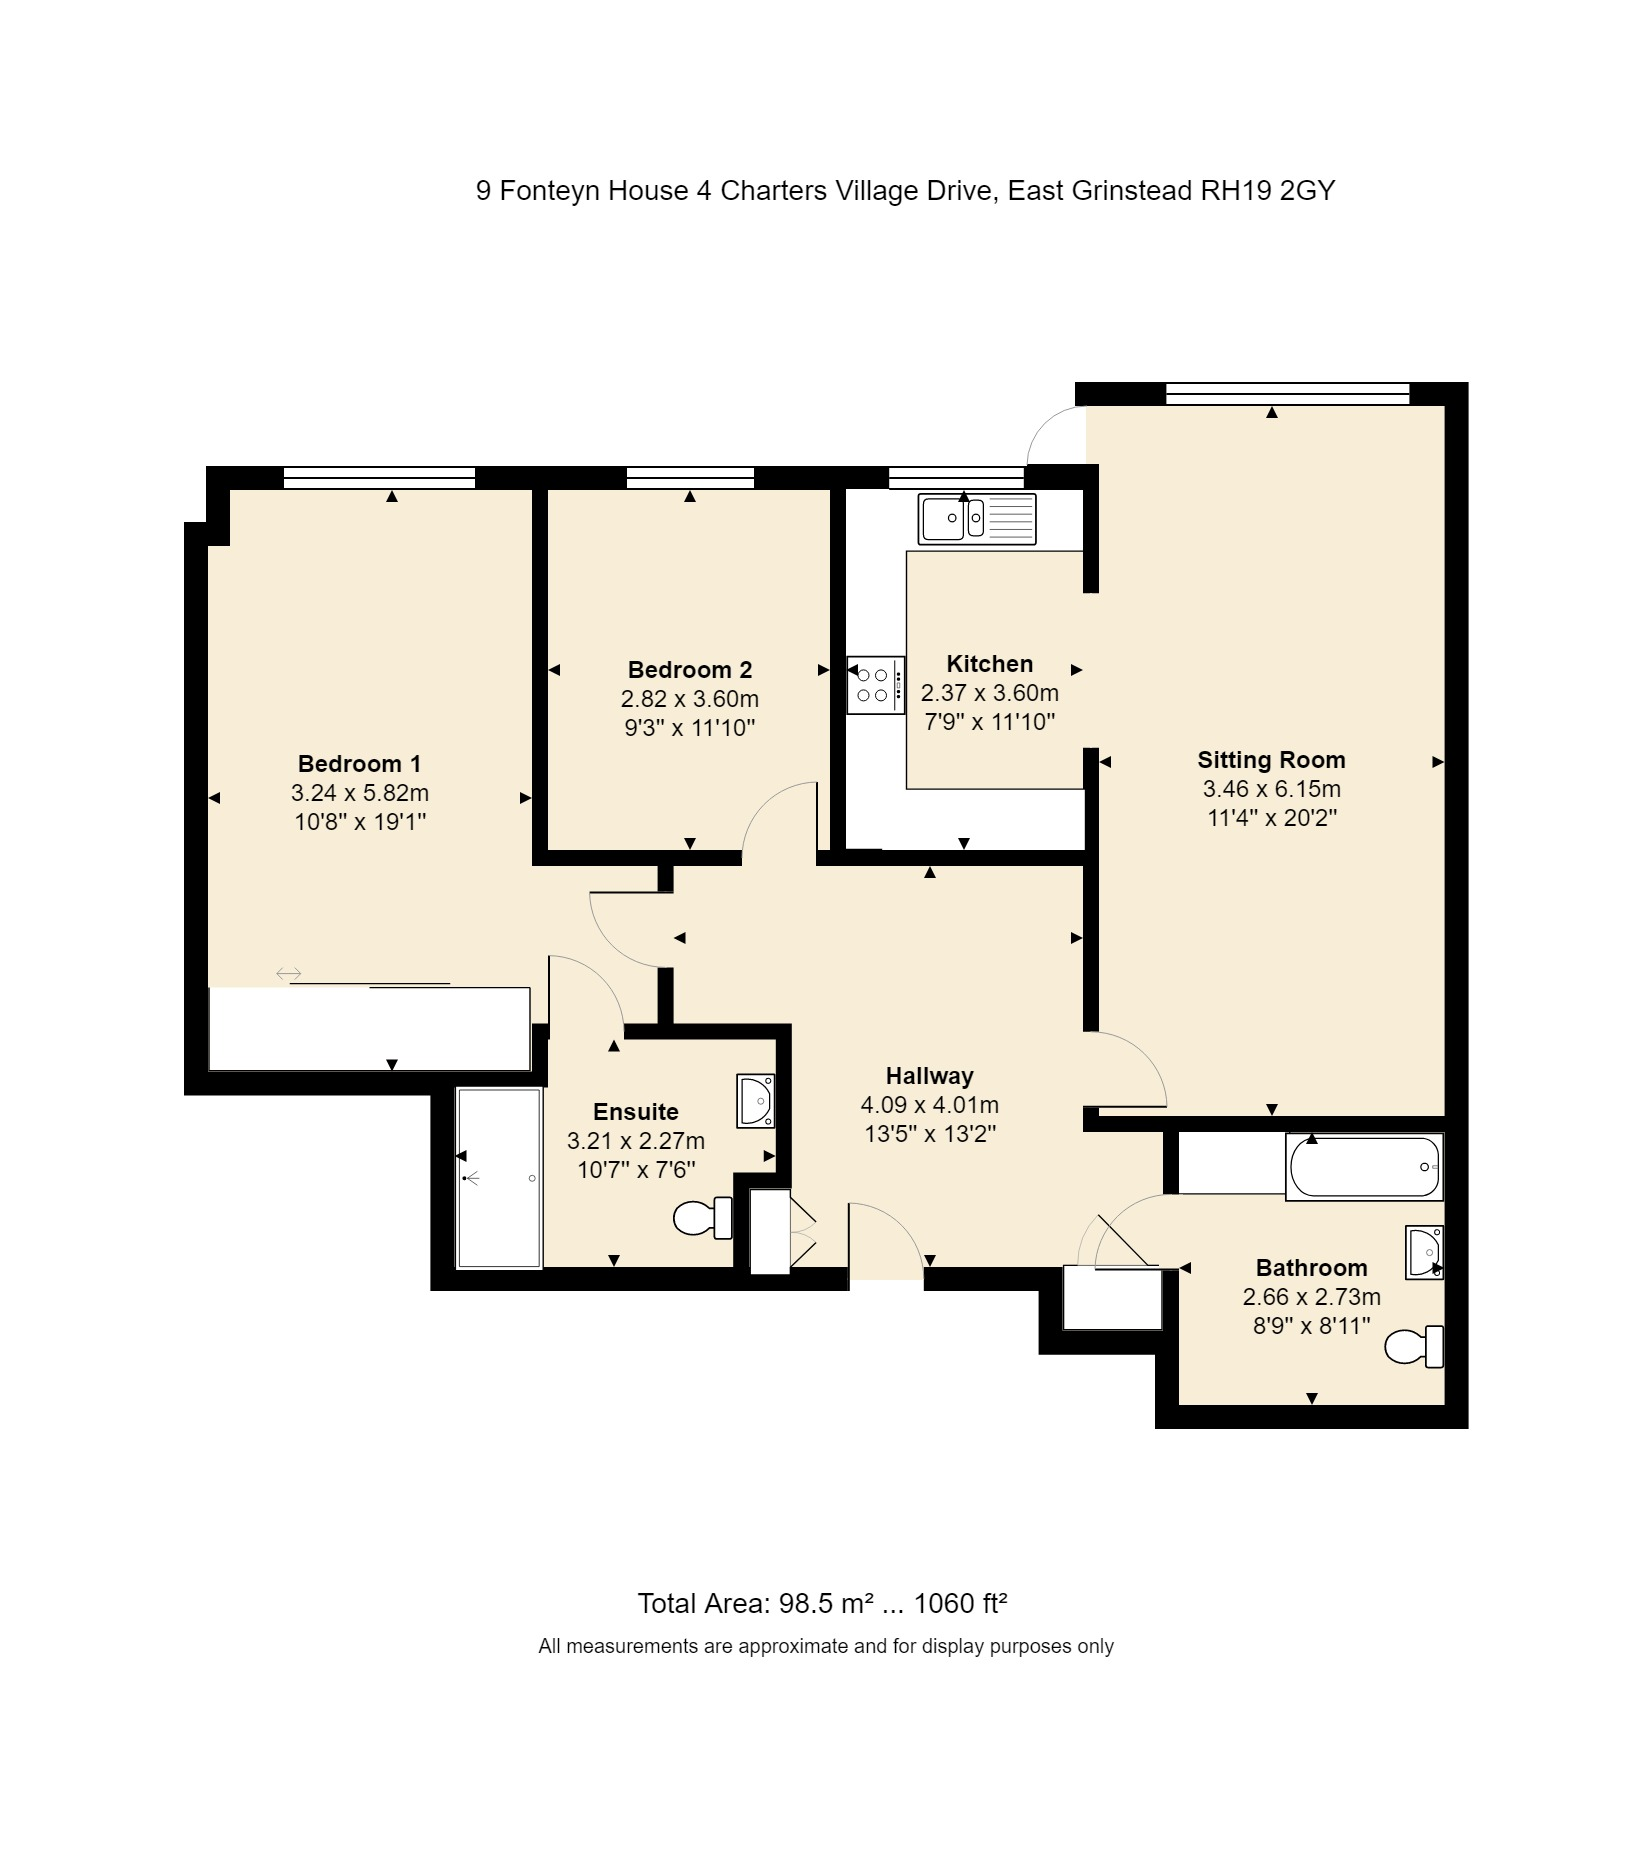 9 Fonteyn House Floorplan